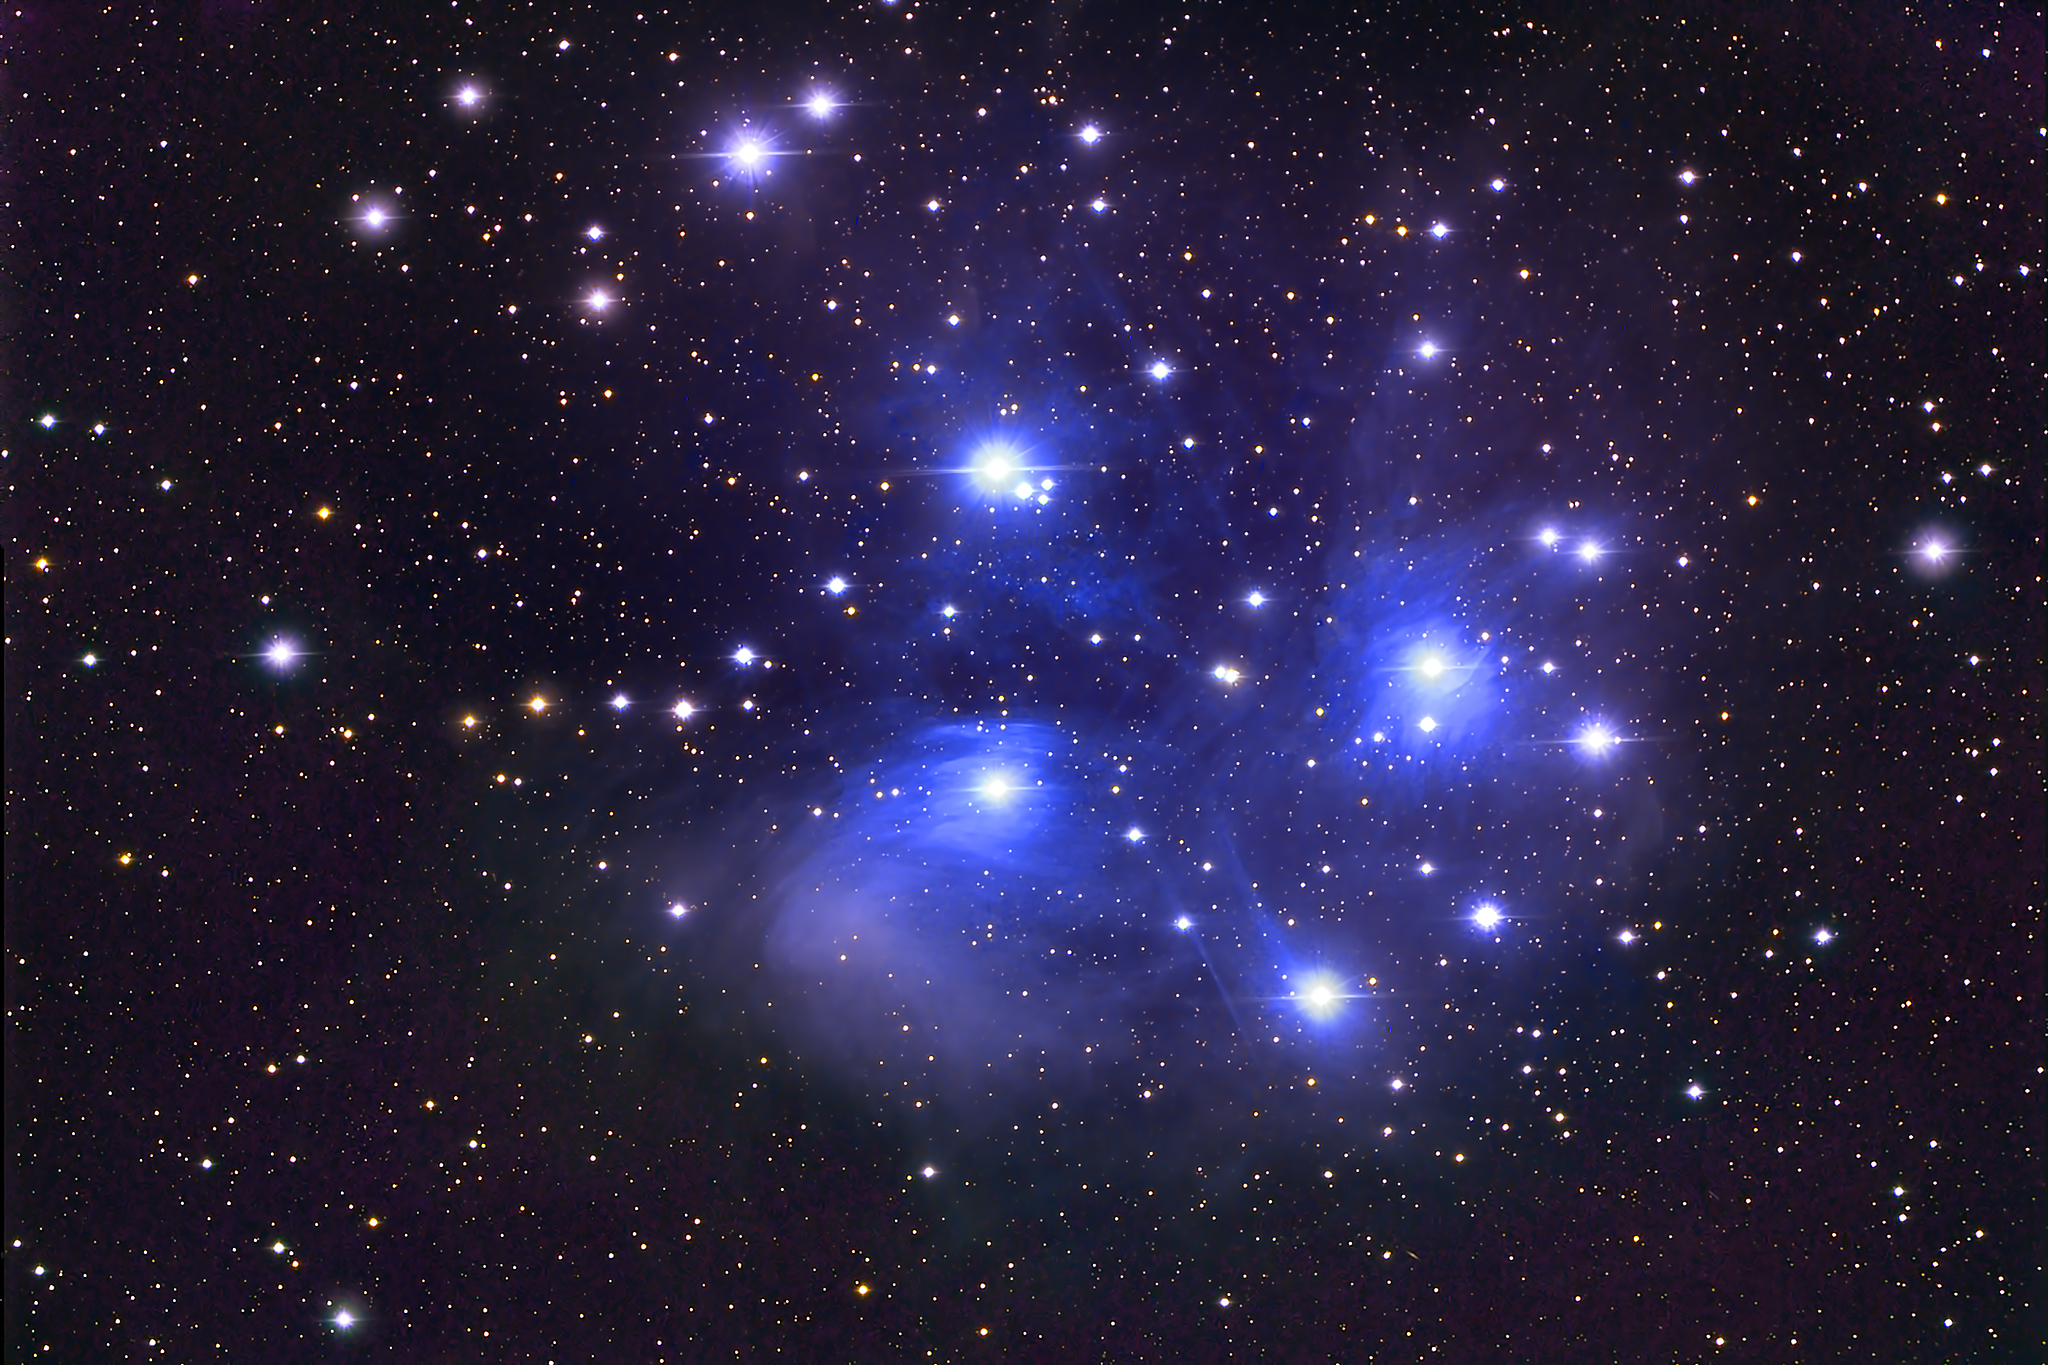 Several bluish-white stars on a black background